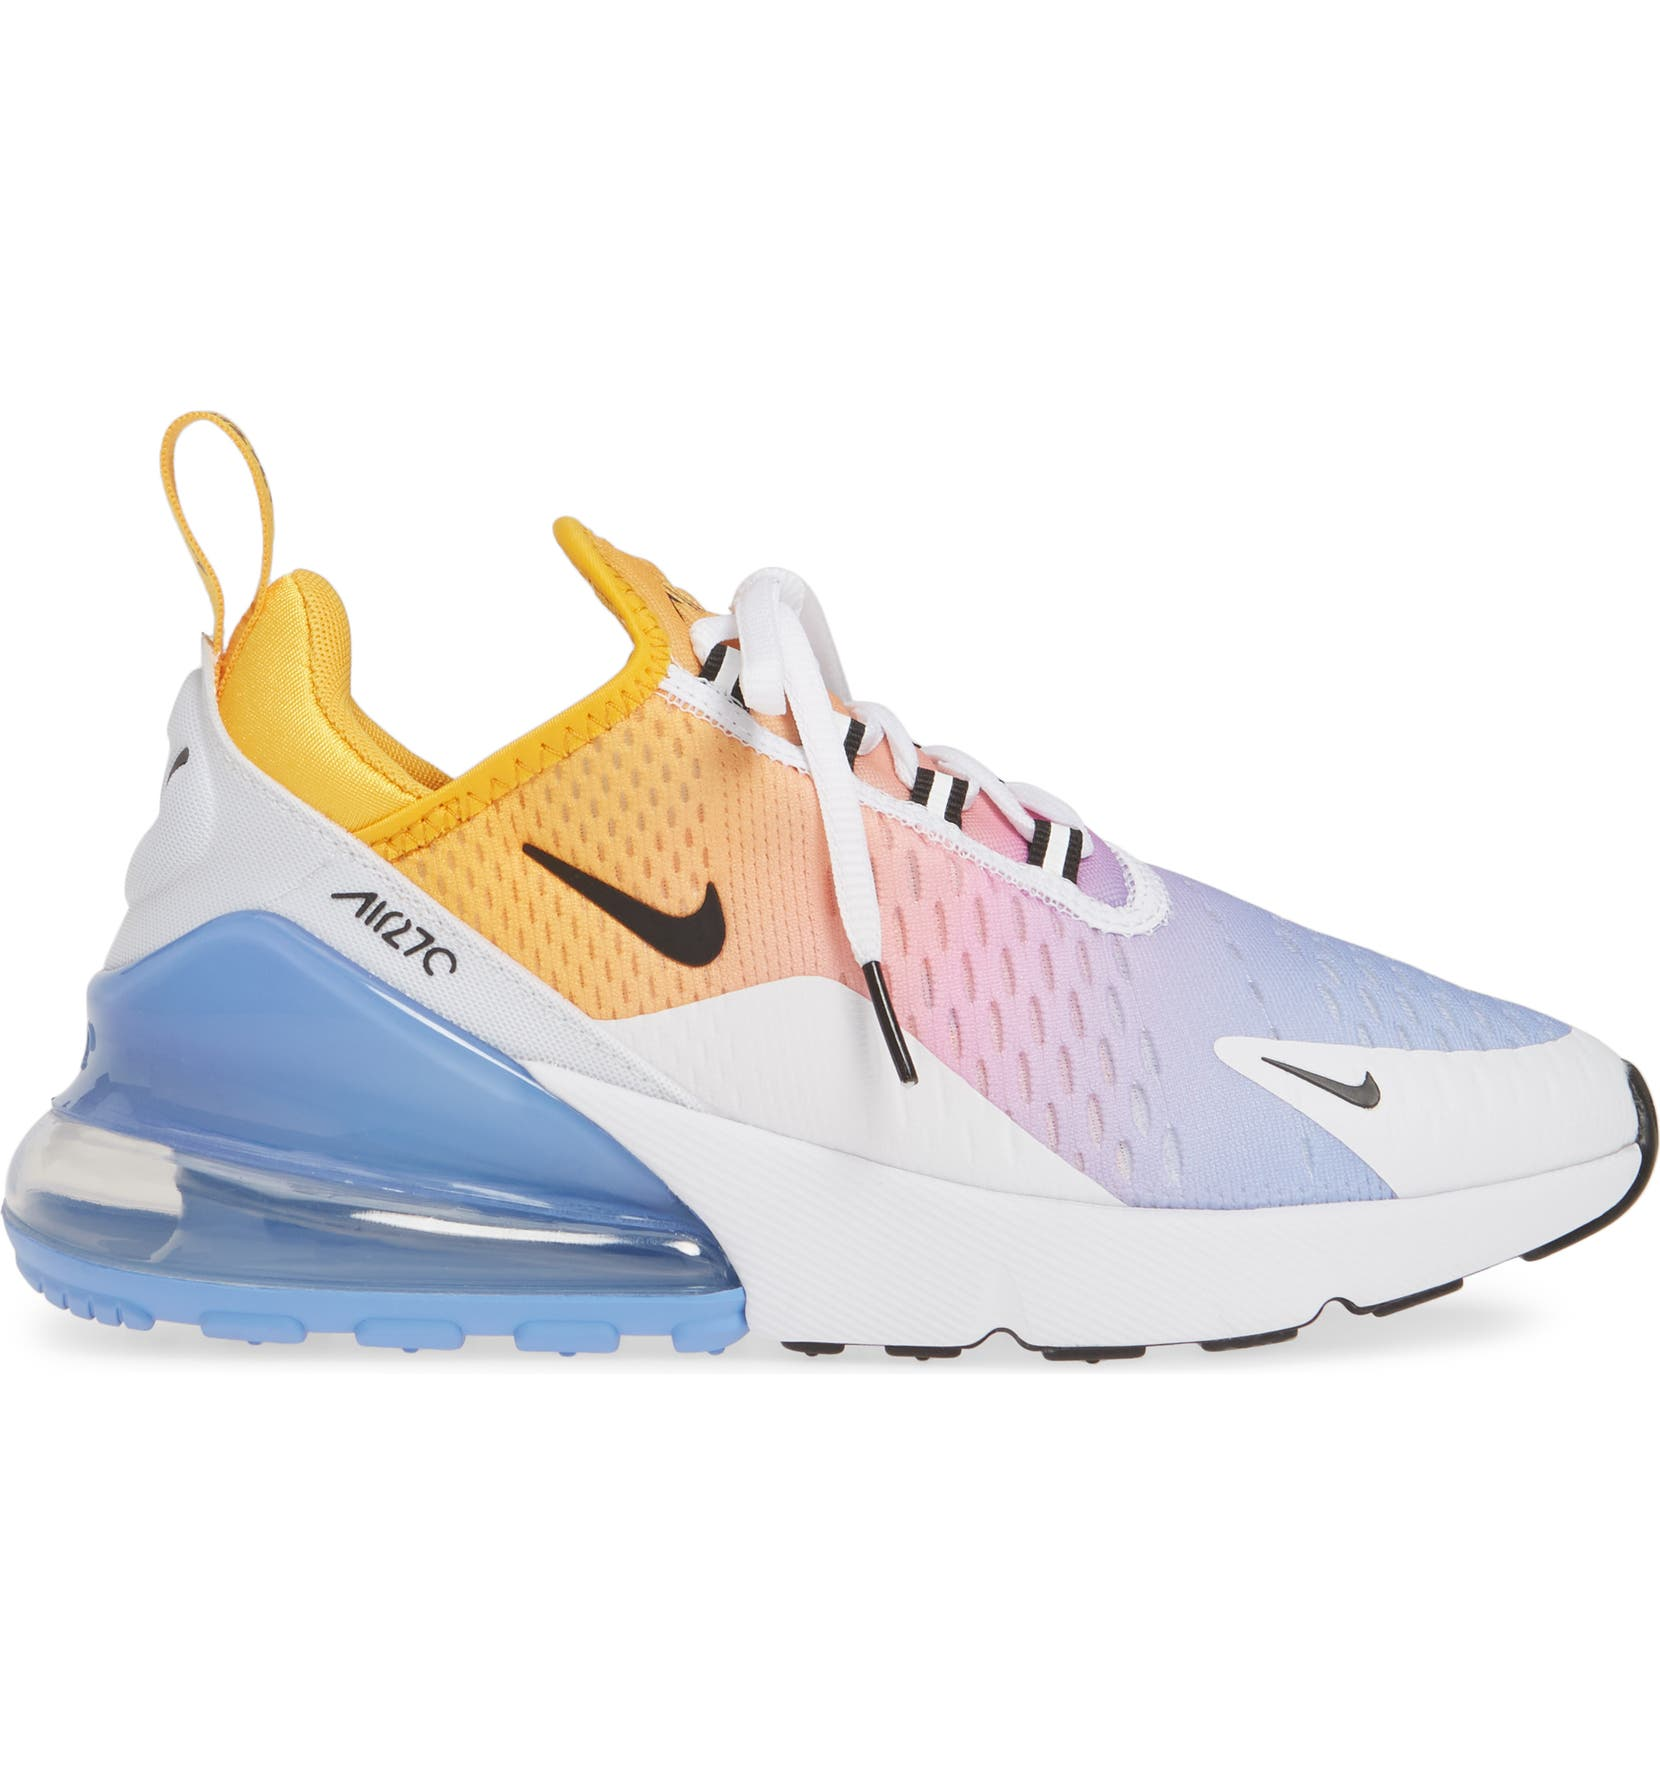 outlet store e540f d8850 Air Max 270 Premium Sneaker